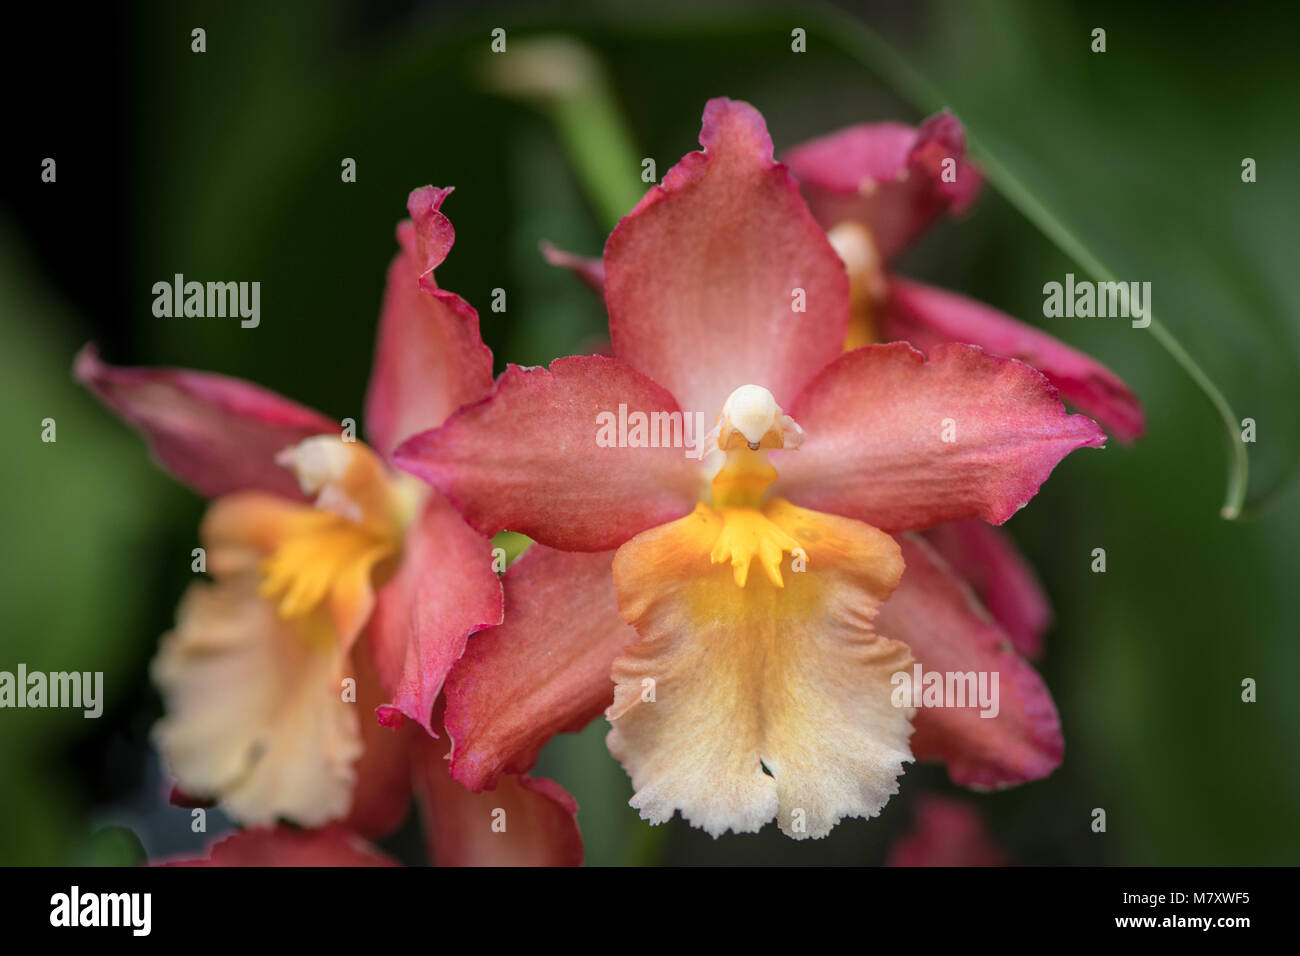 Orchid (Orchidaceae) - Stock Image